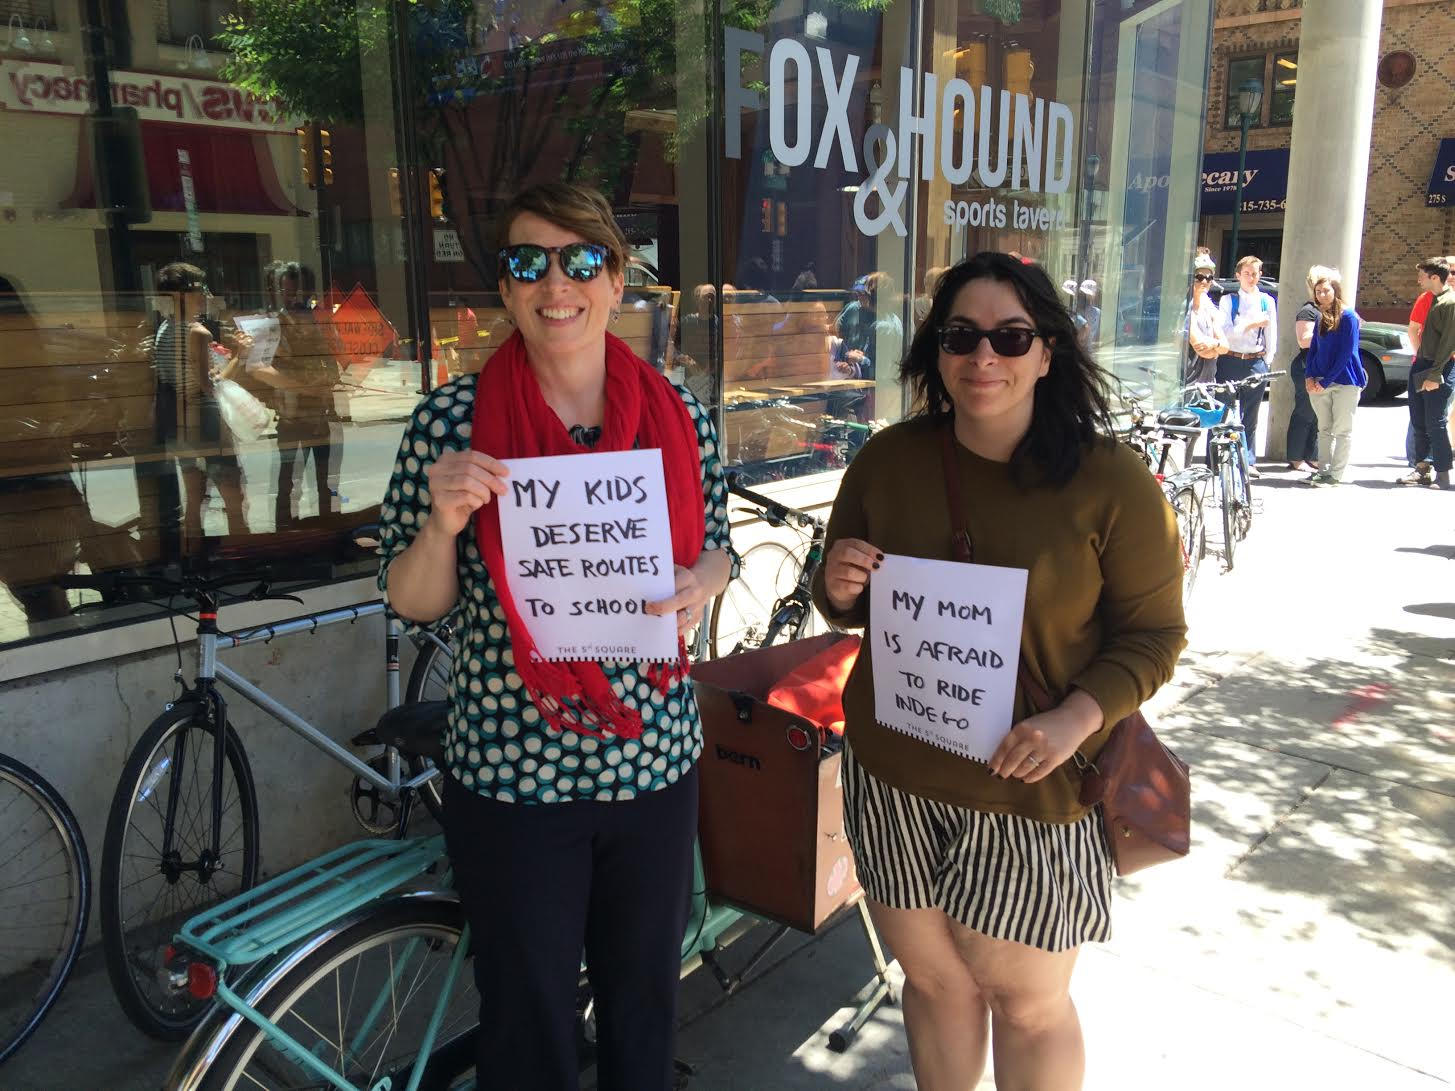 Among the advocates for better bike infrastructure: Kate Mundie and Dena Driscoll. June 14, 2016